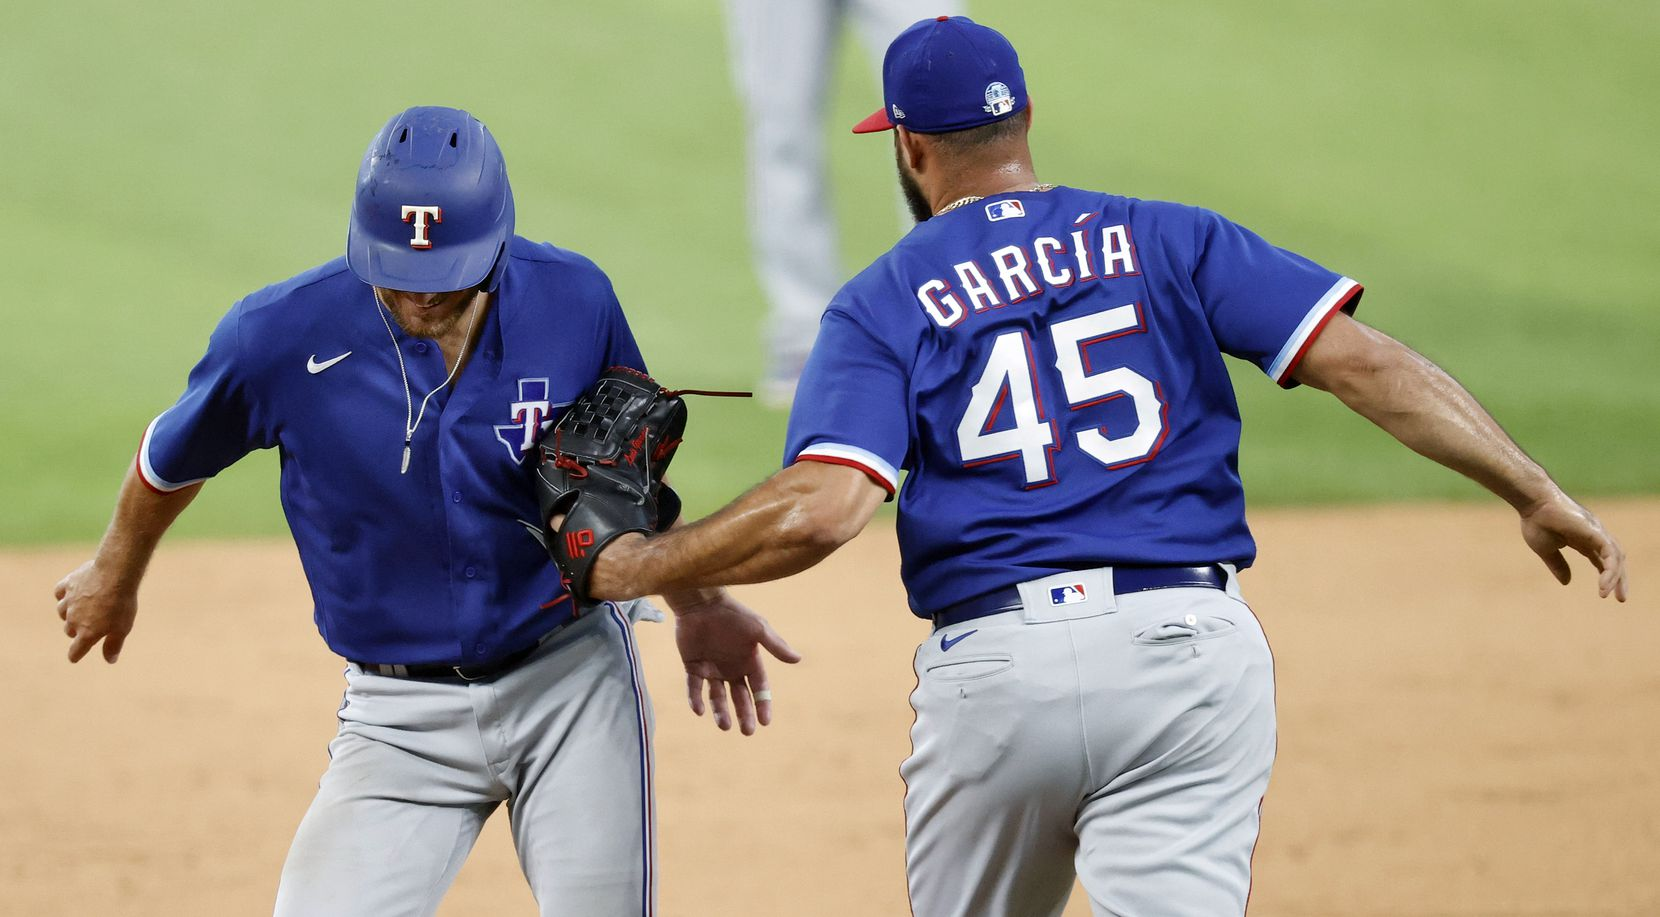 Texas Rangers Jeff Mathis is tagged out by pitcher Luis Garcia after being caught off second base during an intrasquad game at Summer Camp inside Globe Life Field in Arlington, Texas, Friday, July 10, 2020. (Tom Fox/The Dallas Morning News)